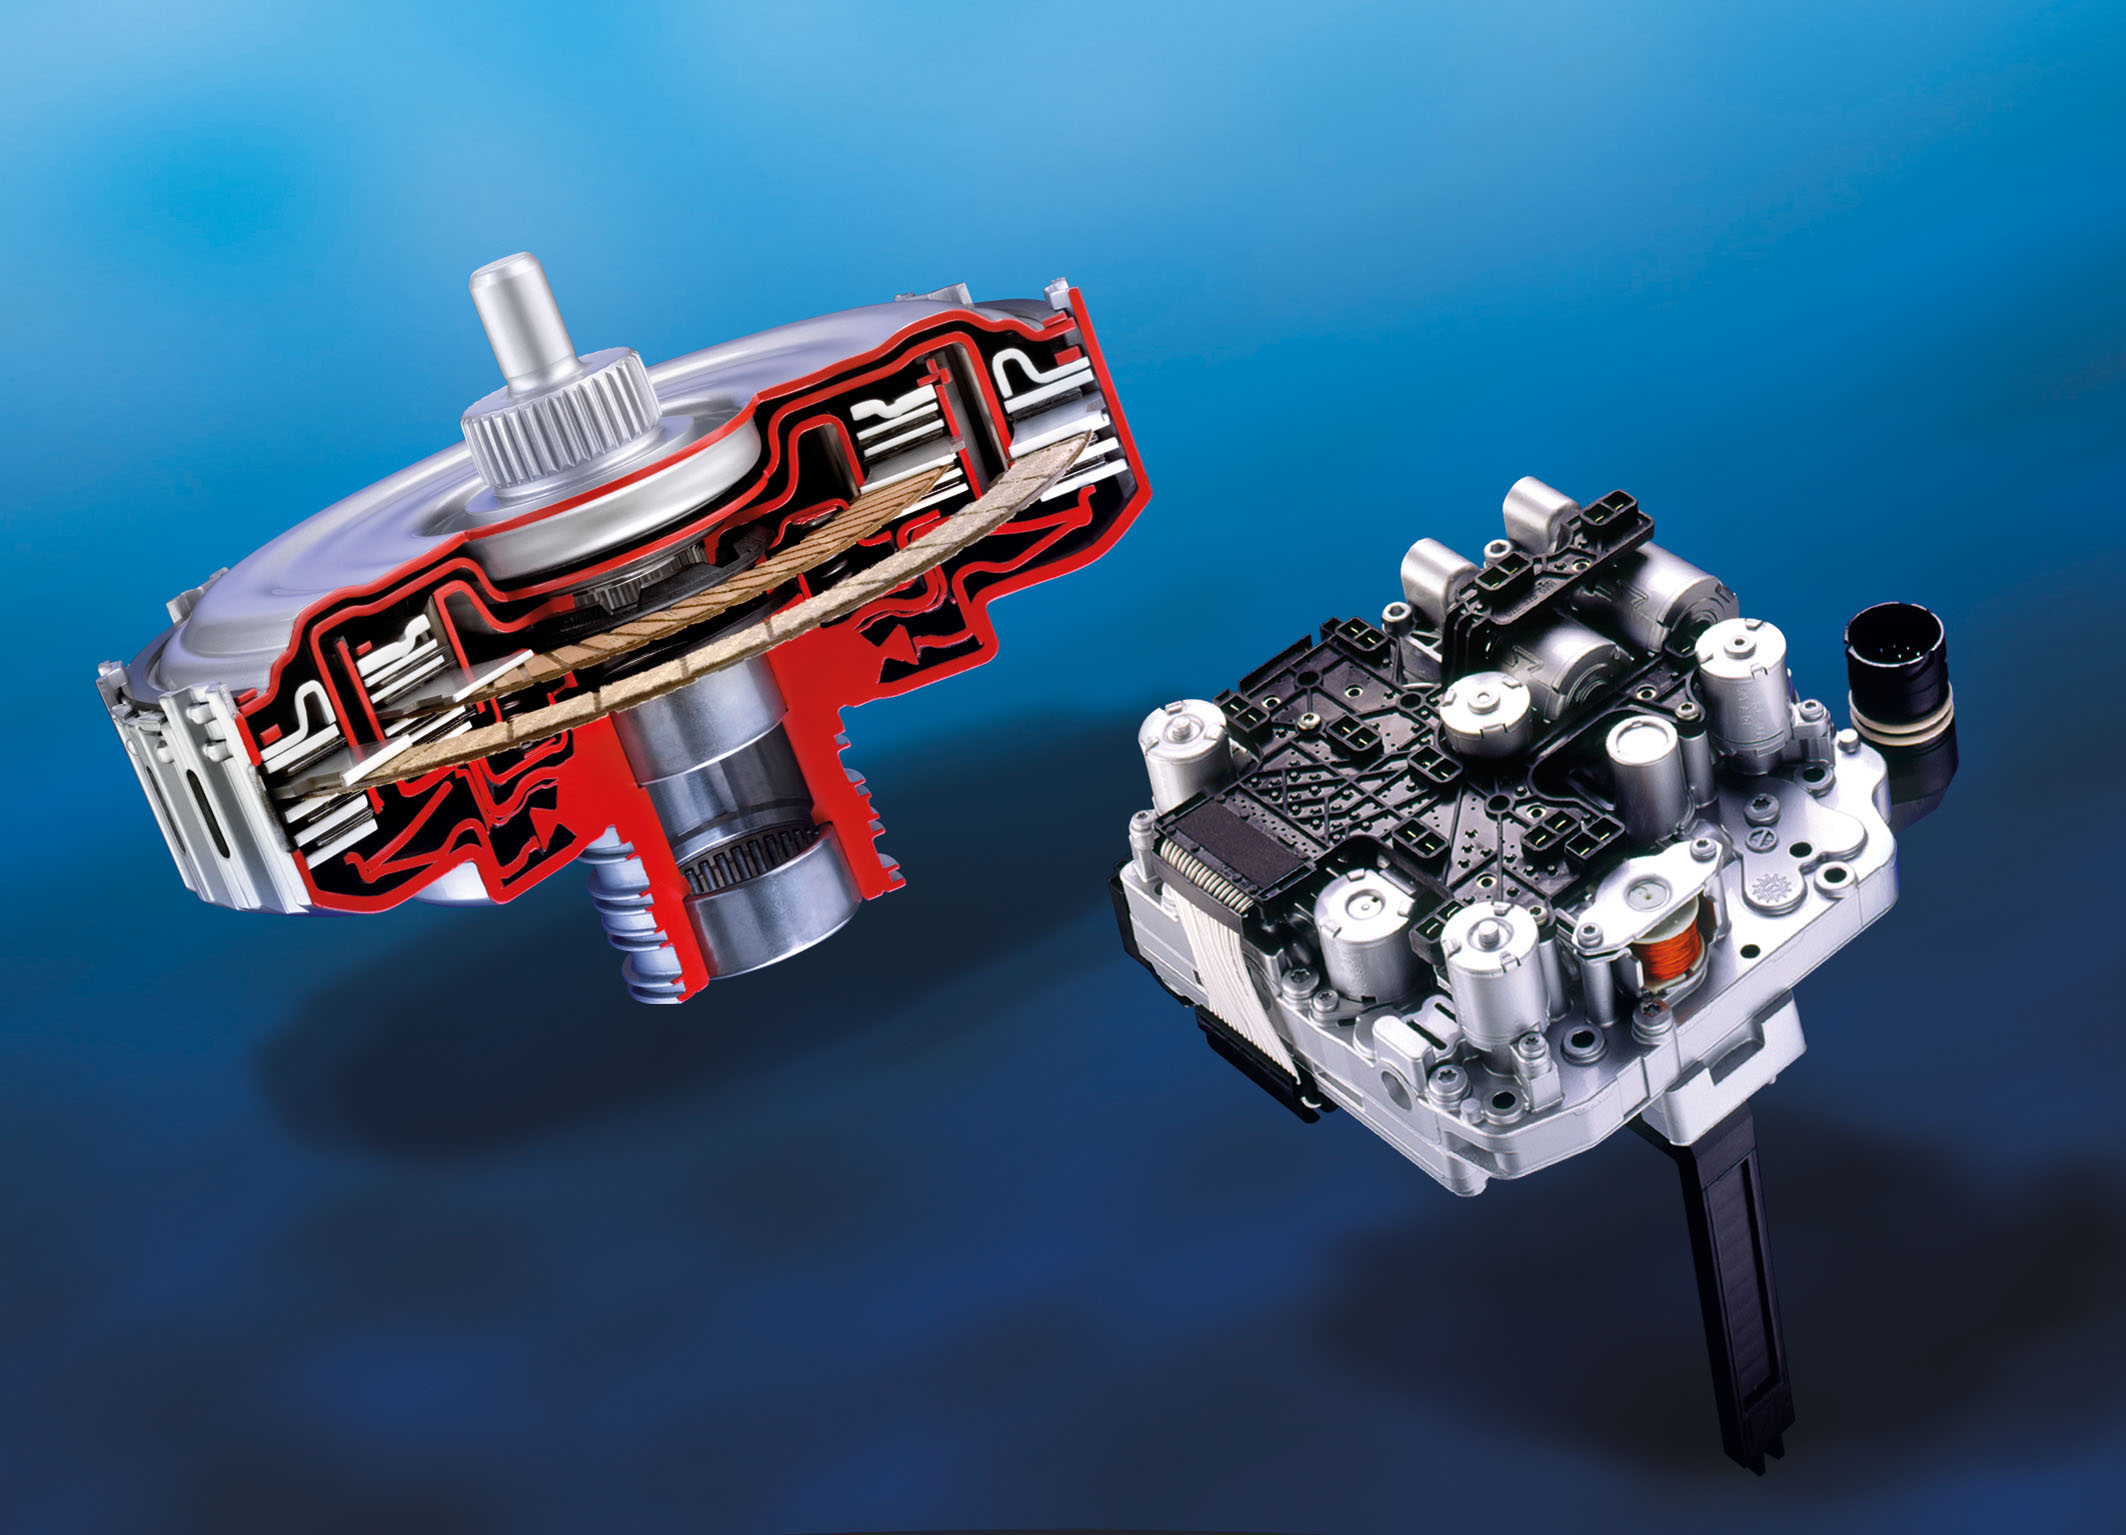 BorgWarner's state-of-the-art DualTronic® technology allows shifts within fractions of a second for increased shift performance and efficiency.